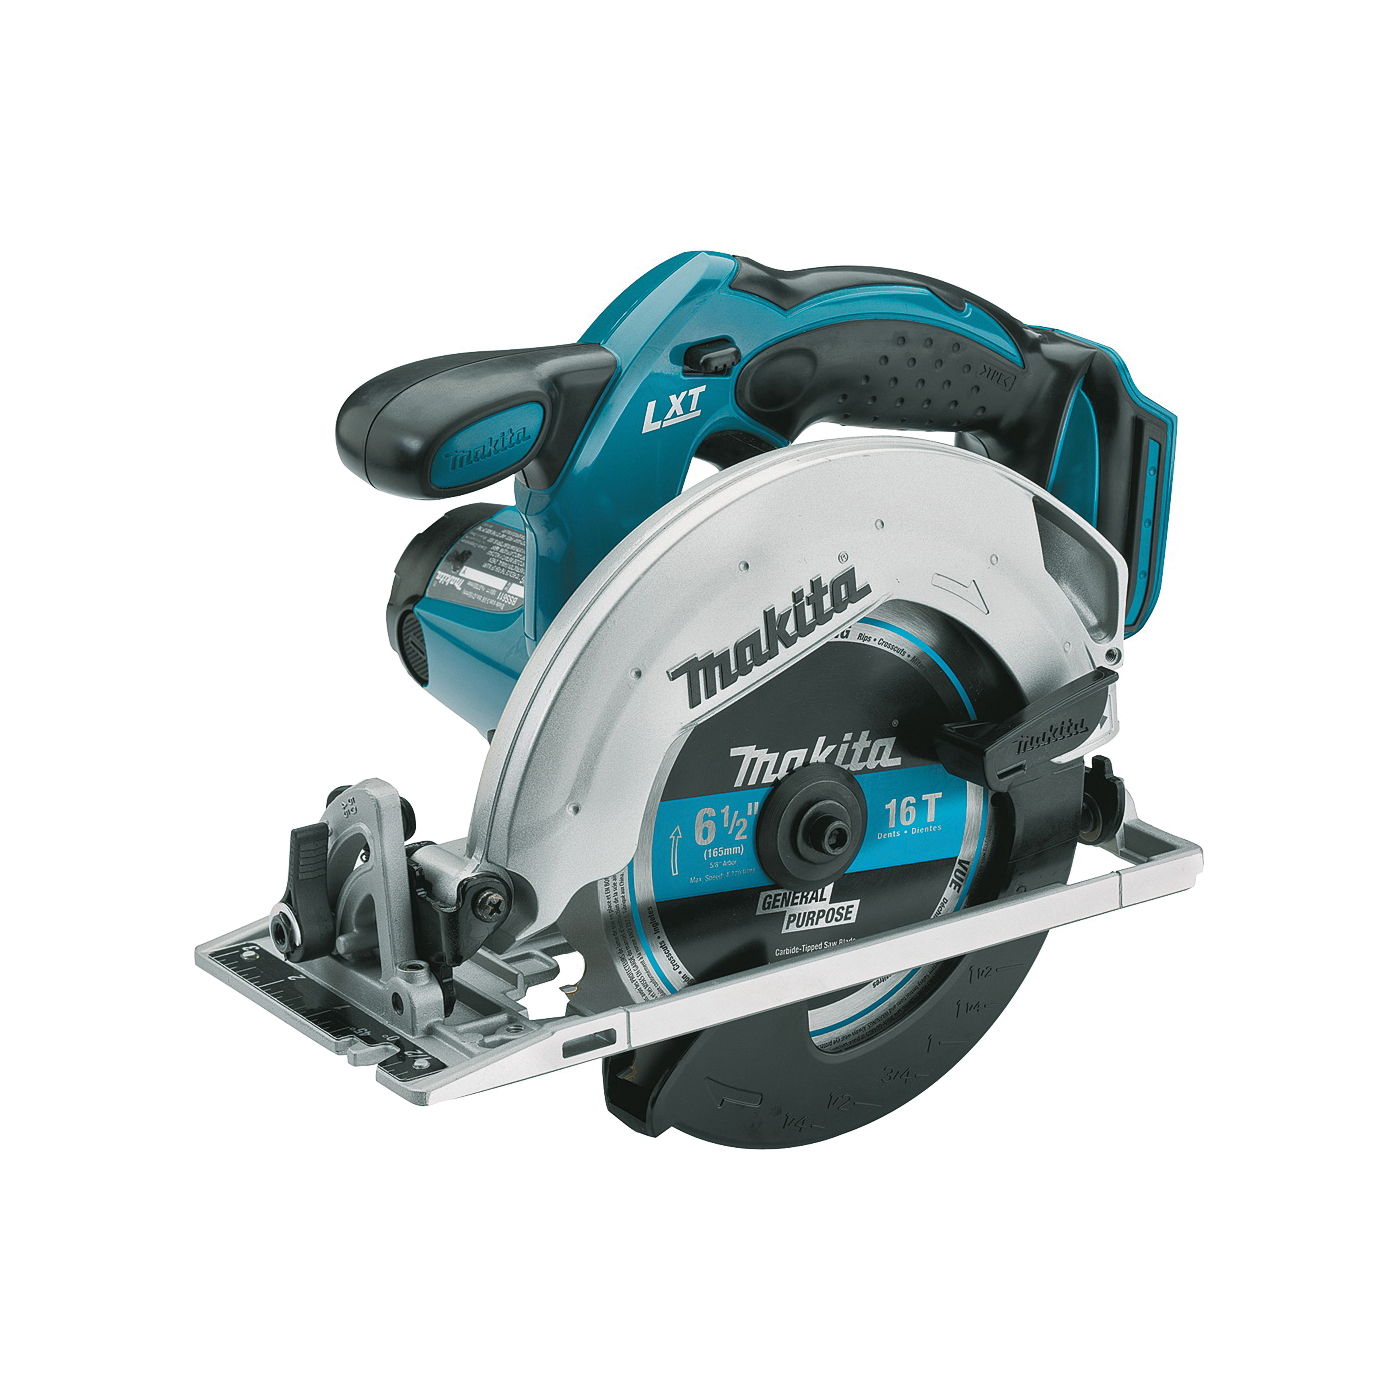 Picture of Makita LXT XSS02Z Circular Saw, Bare Tool, 18 V Battery, 3 Ah, 6-1/2 in Dia Blade, 3700 rpm Speed